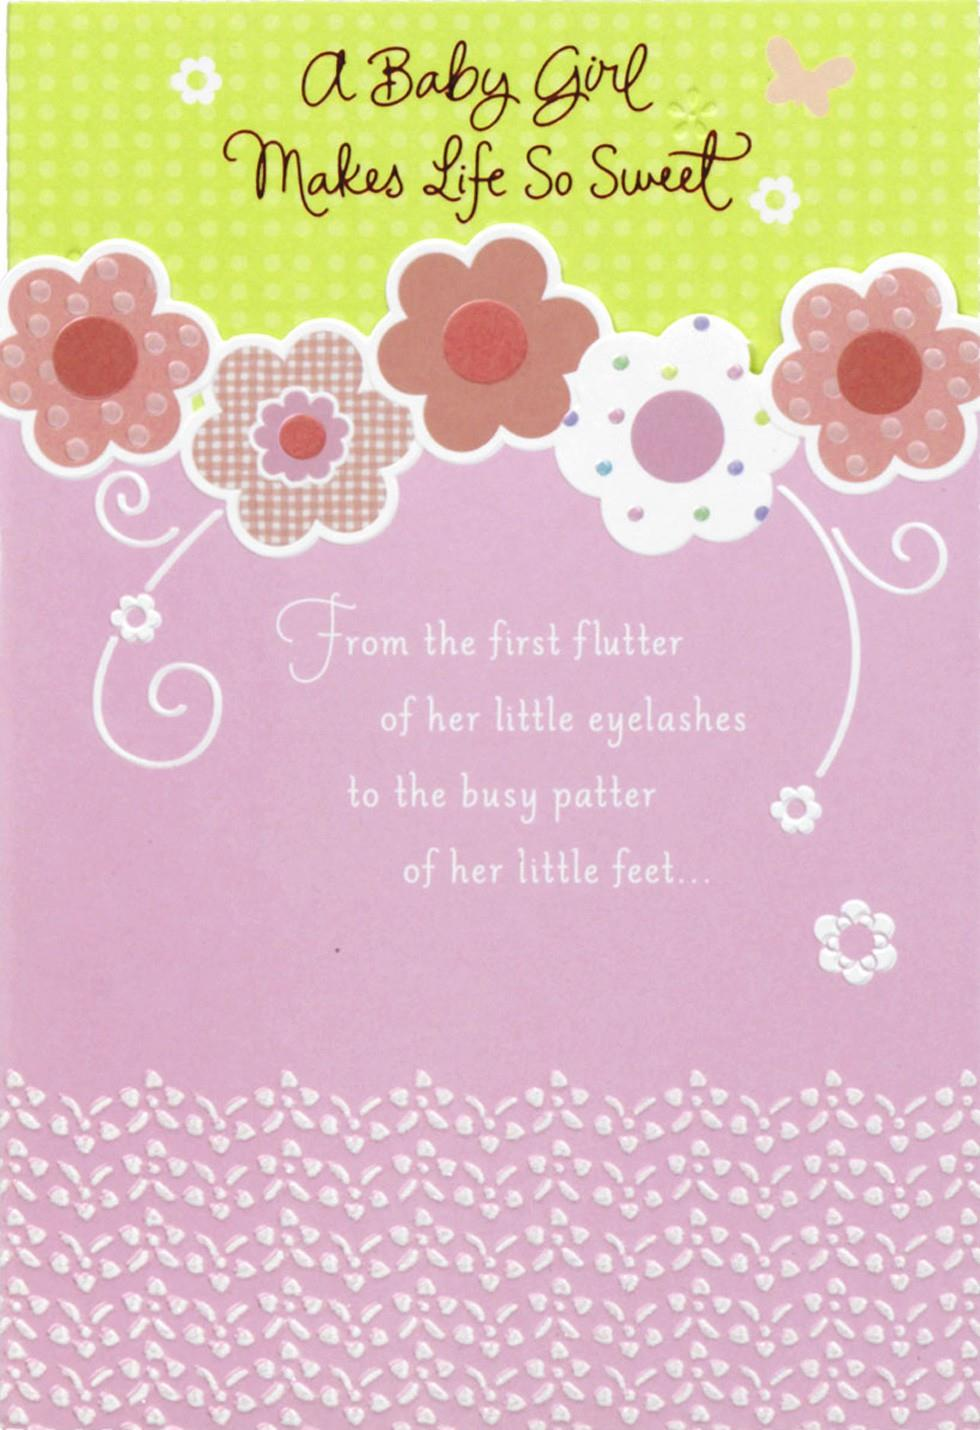 Pink flowers and swirls baby girl congratulations card Hallmark flowers